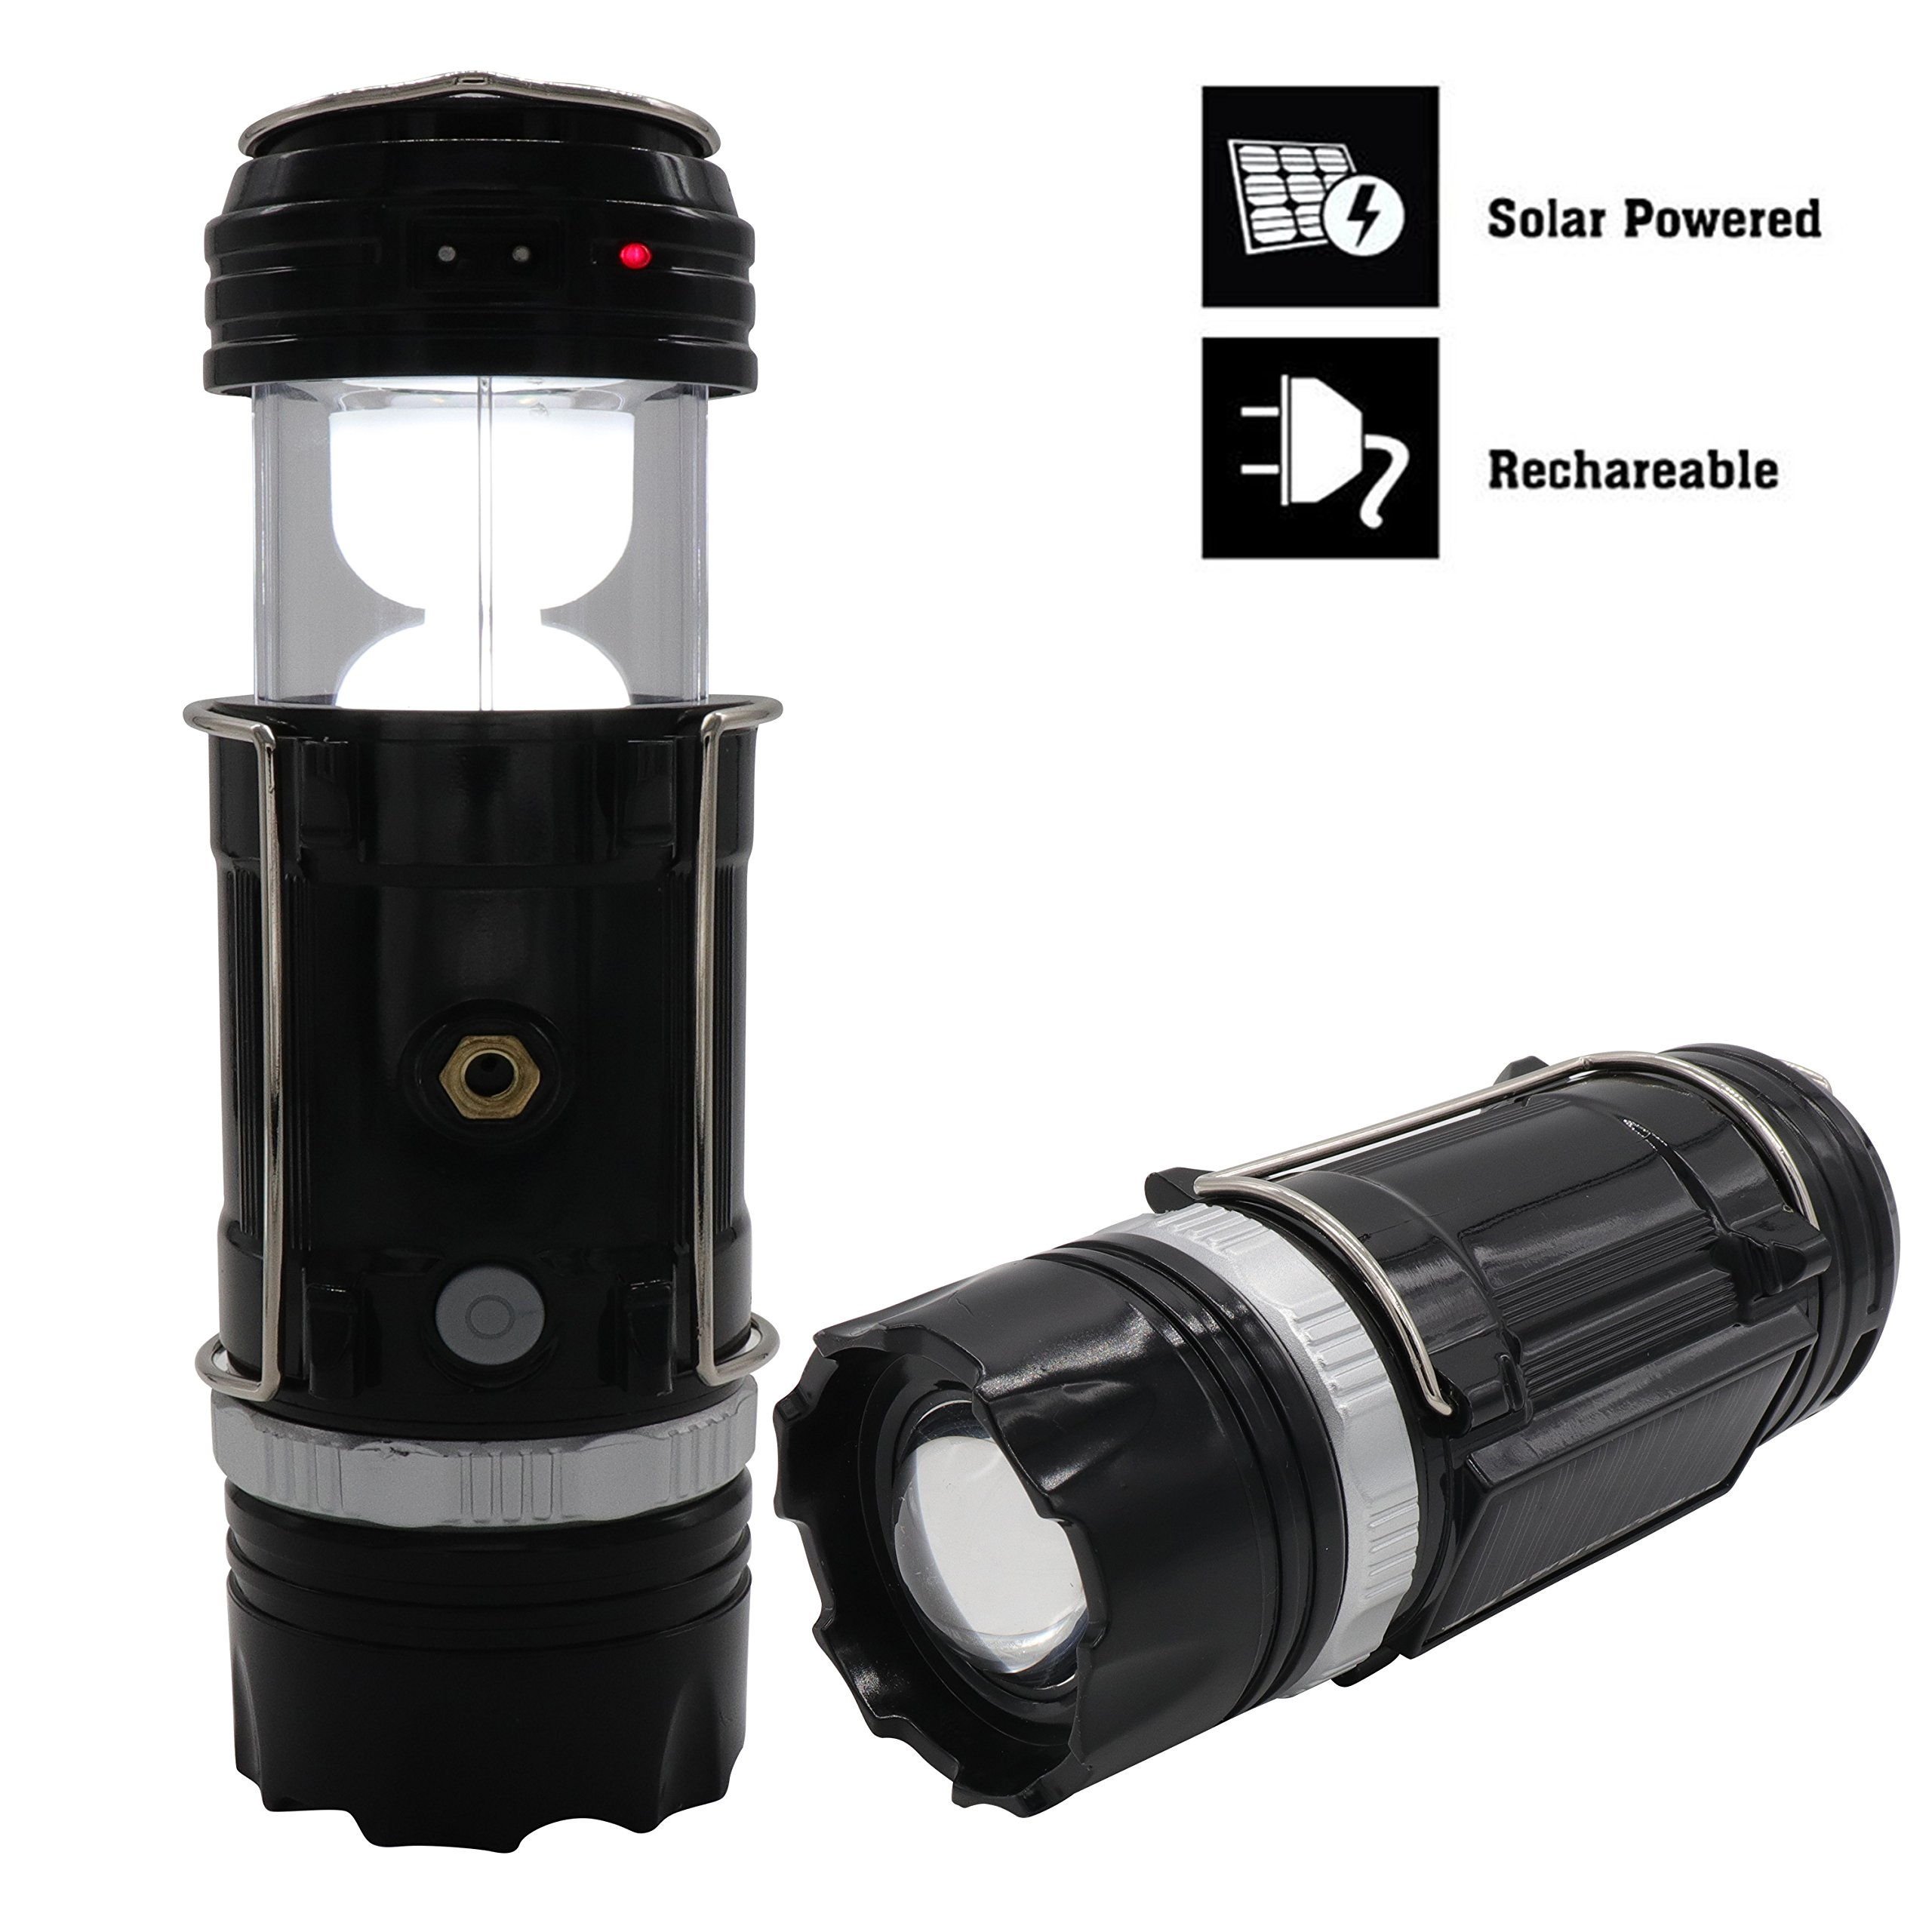 LANT 2-in-1 Rechargeable Solar Led Camping Lantern & Handheld Flashlight lanterns rechargeable for Outdoor and Emergency Long-Range Adjustable Stretching Focusing Bronze